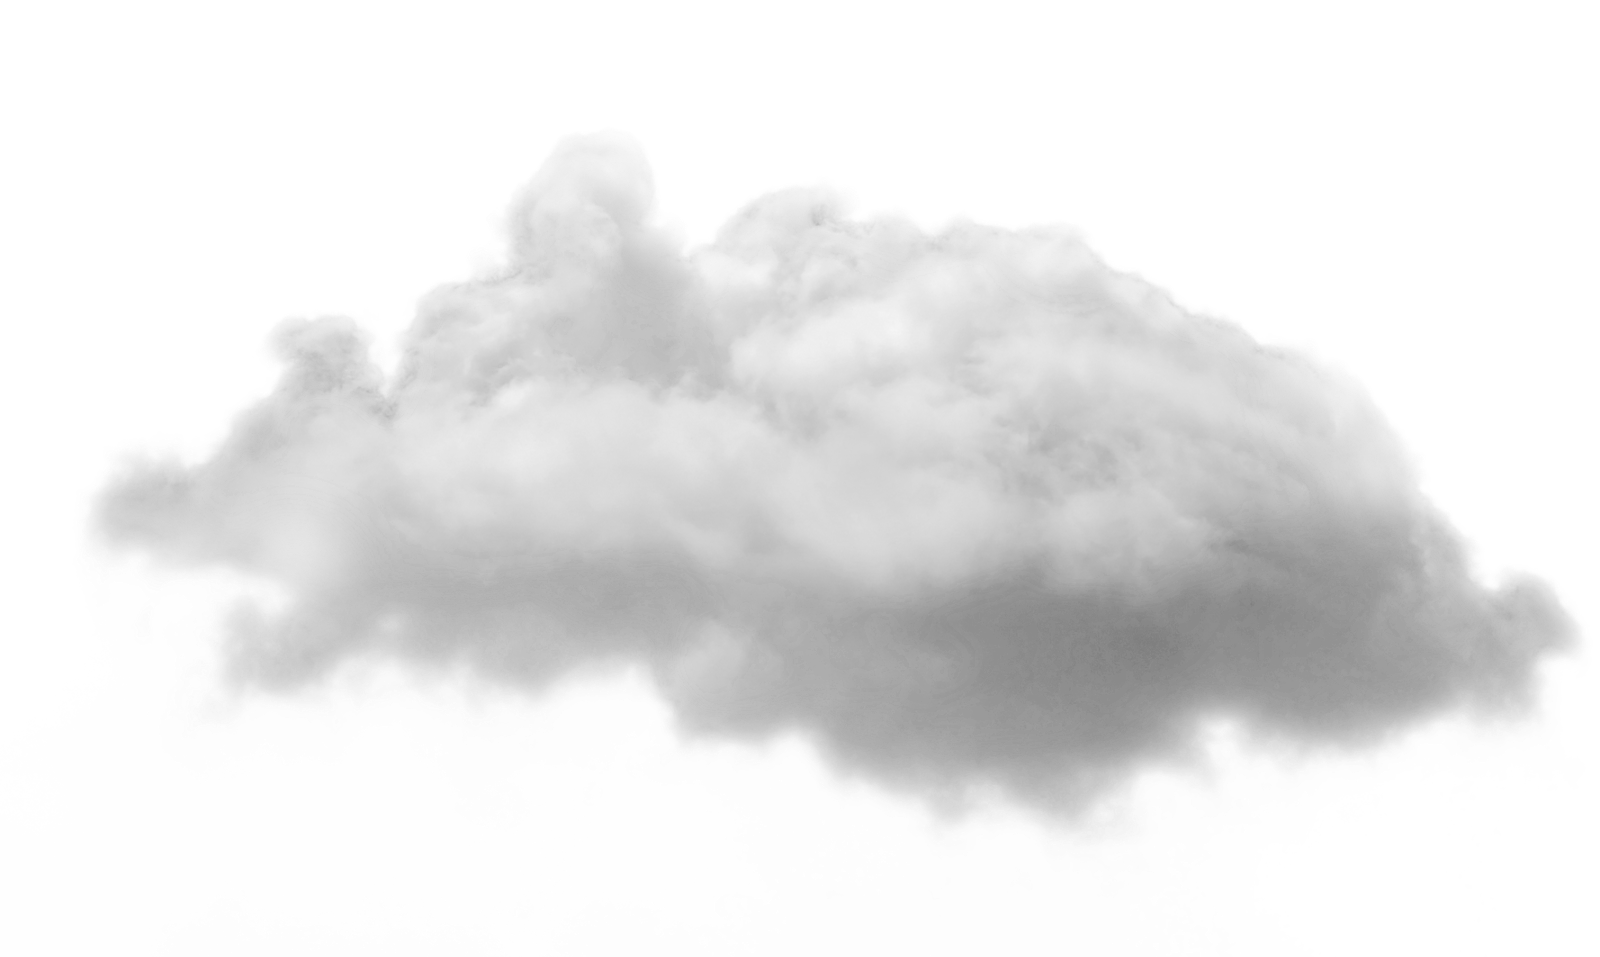 8 bit clouds png. Gentilhommebrittanyblog and image type